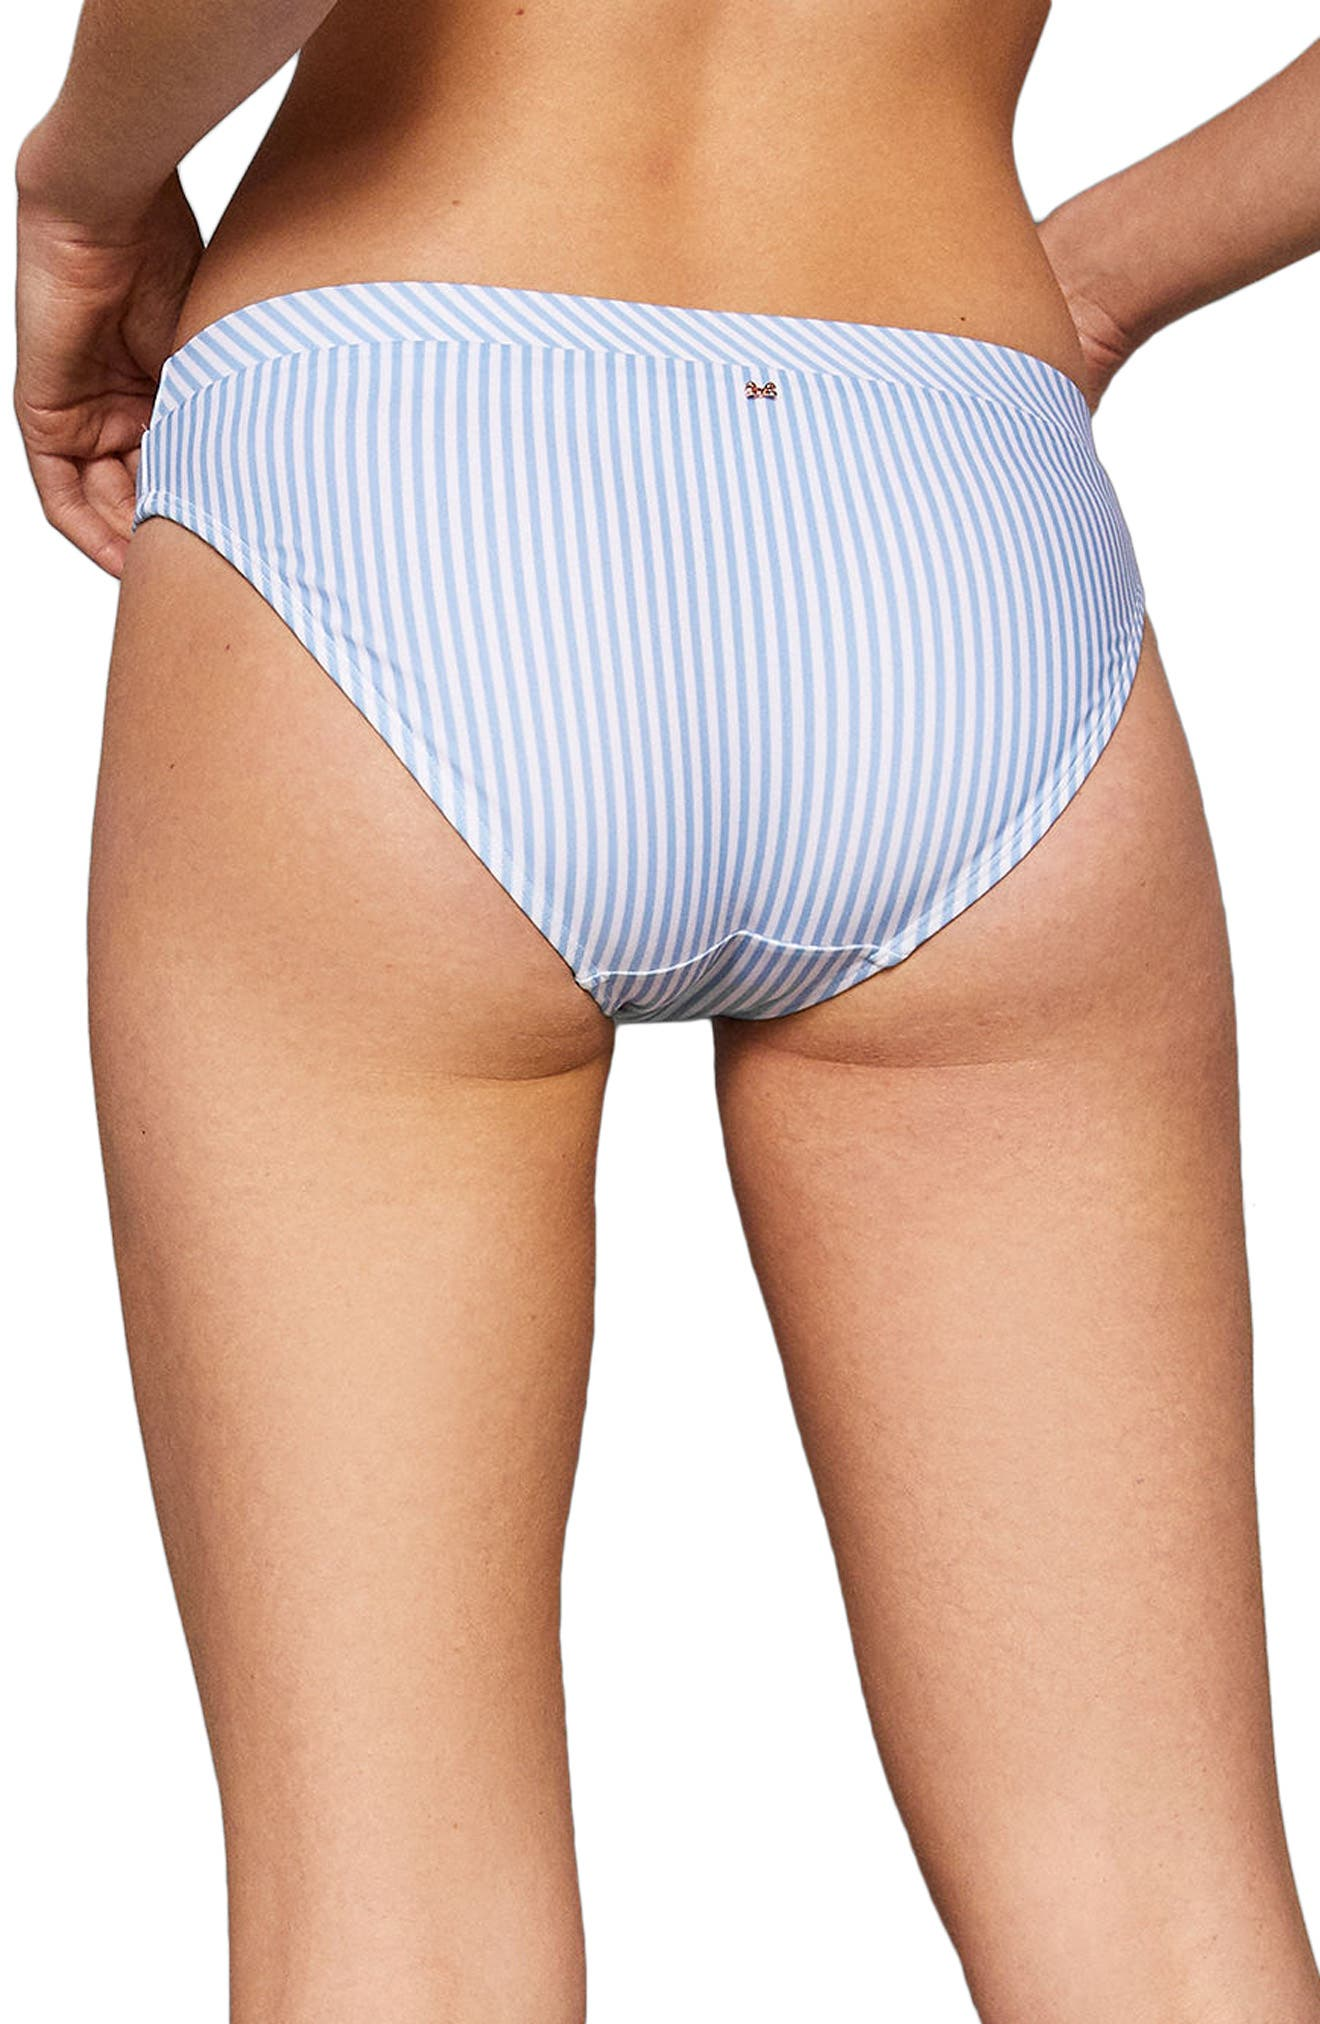 Stripe Bikini Bottoms,                             Alternate thumbnail 2, color,                             PALE BLUE